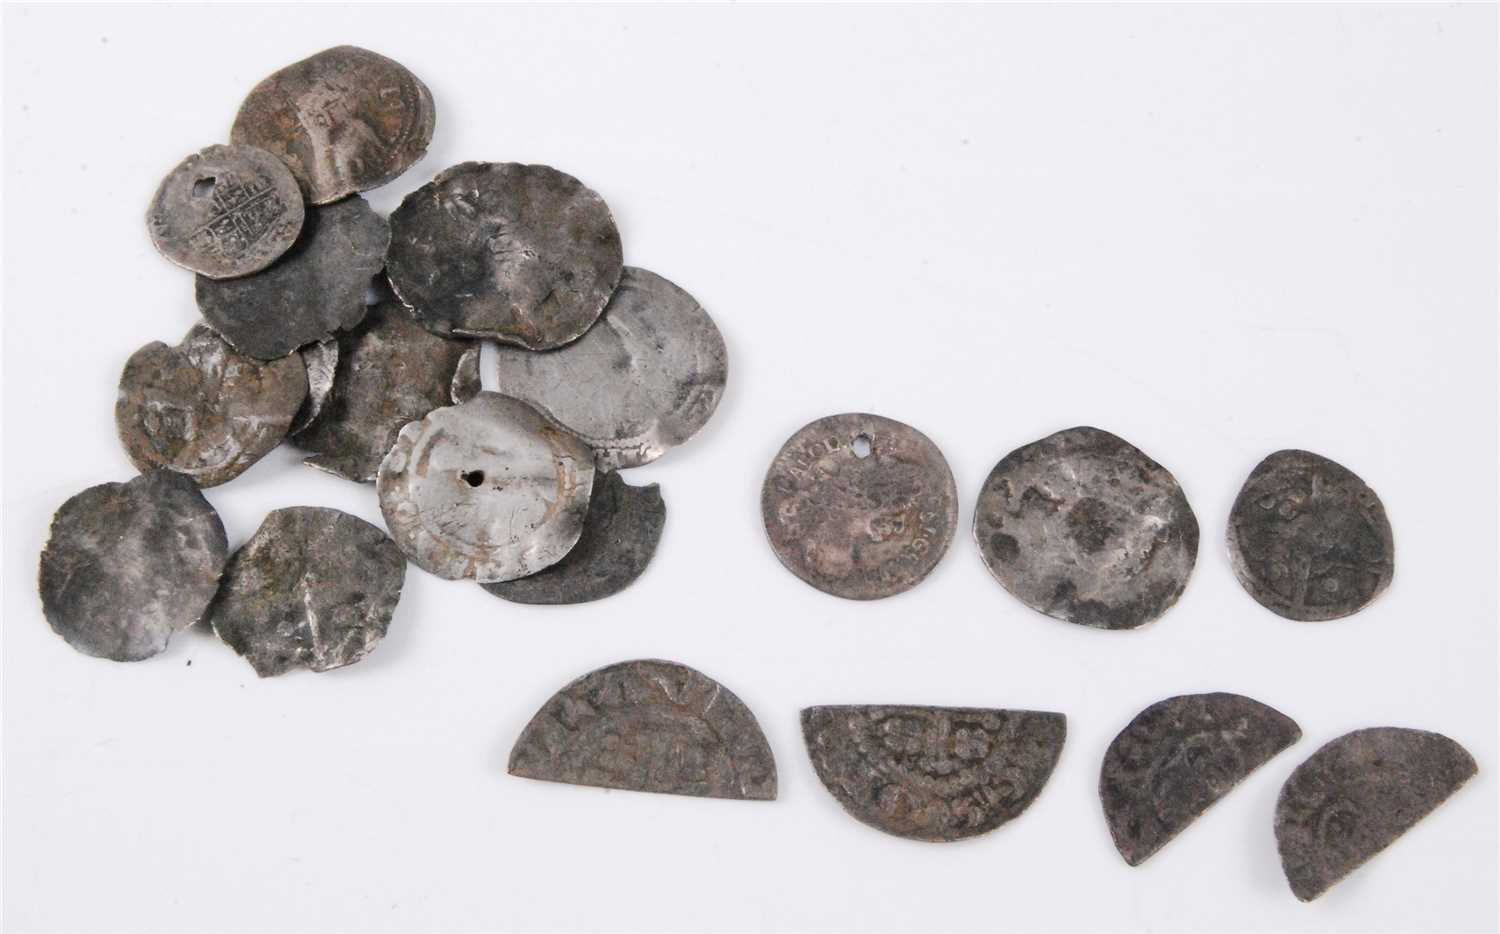 Lot 2074 - England, a collection of mainly English hammered silver coins